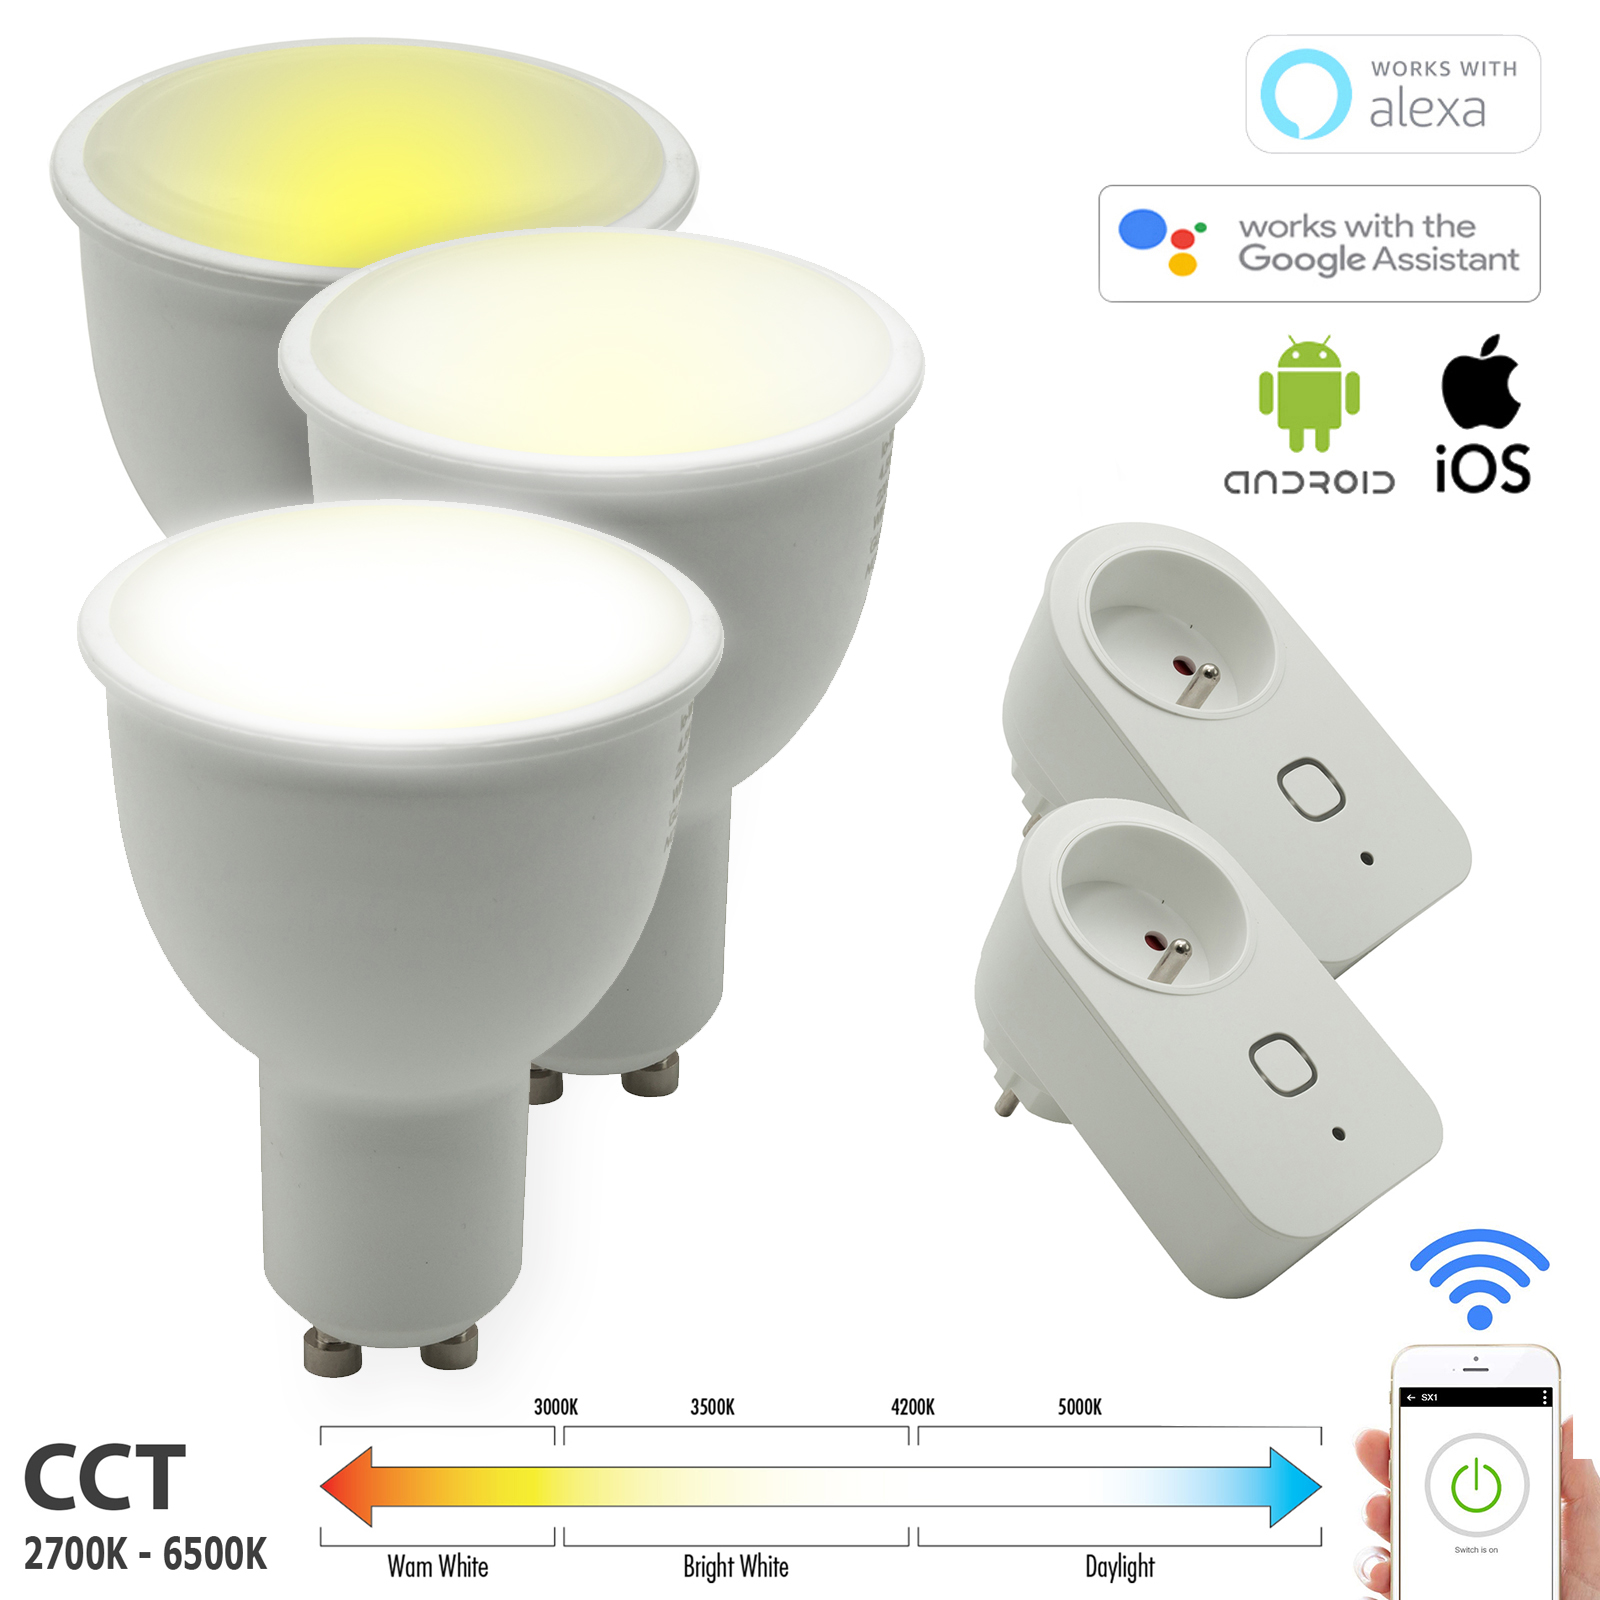 STARTER KIT SMART BULB WiFi 3 spotlights LED GU10 CCT 15W light, from 2700K to 6500K + 2 sockets sockets smart NO HUB Amazon Alexa Googole Home IFTTT app for smartphone Android iOS